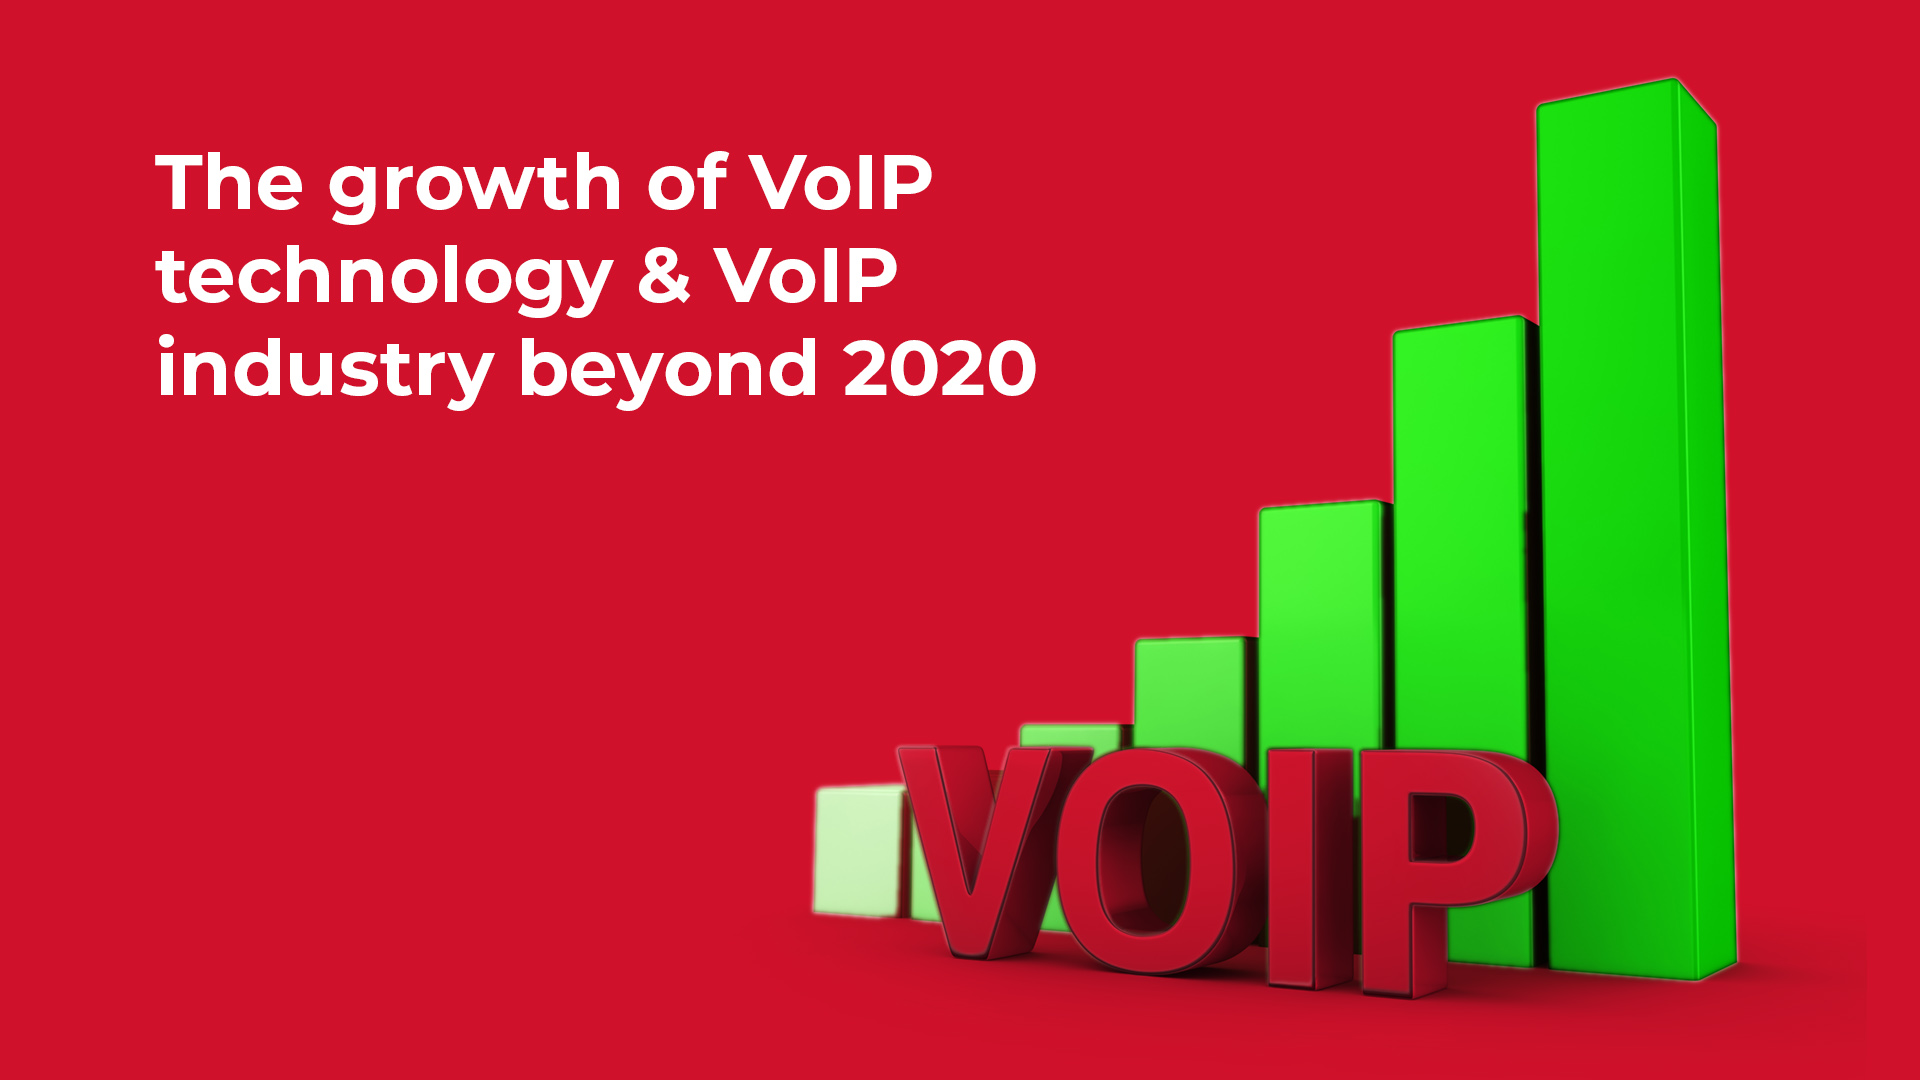 Growth of VOIP